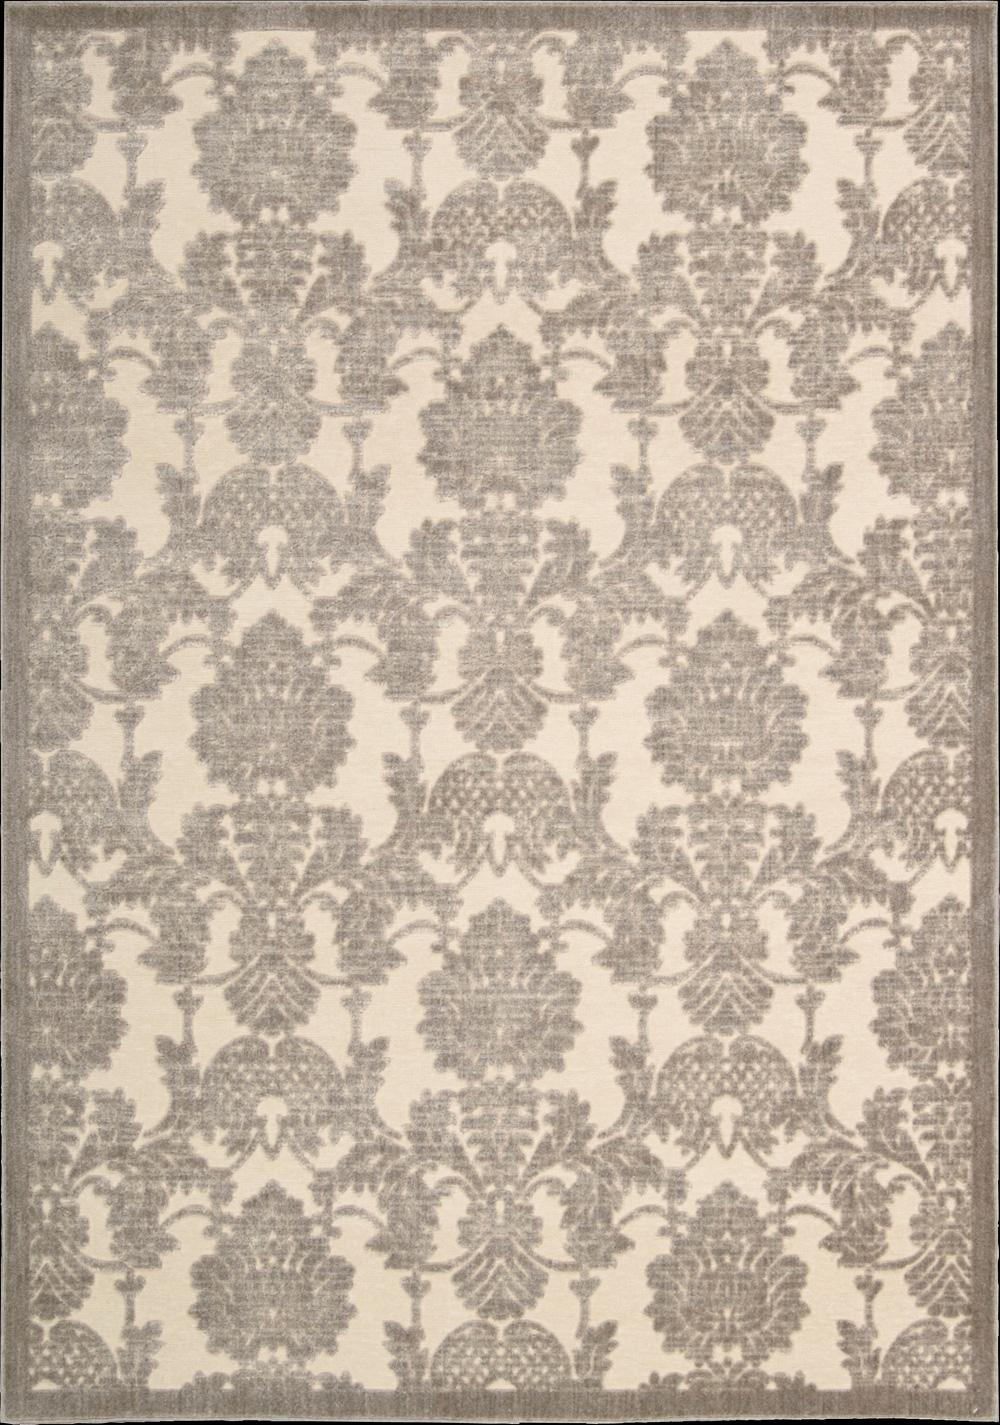 "Nourison Graphic Illusions Area Rug 3'6"" x 5'6"" - Item Number: 11798"